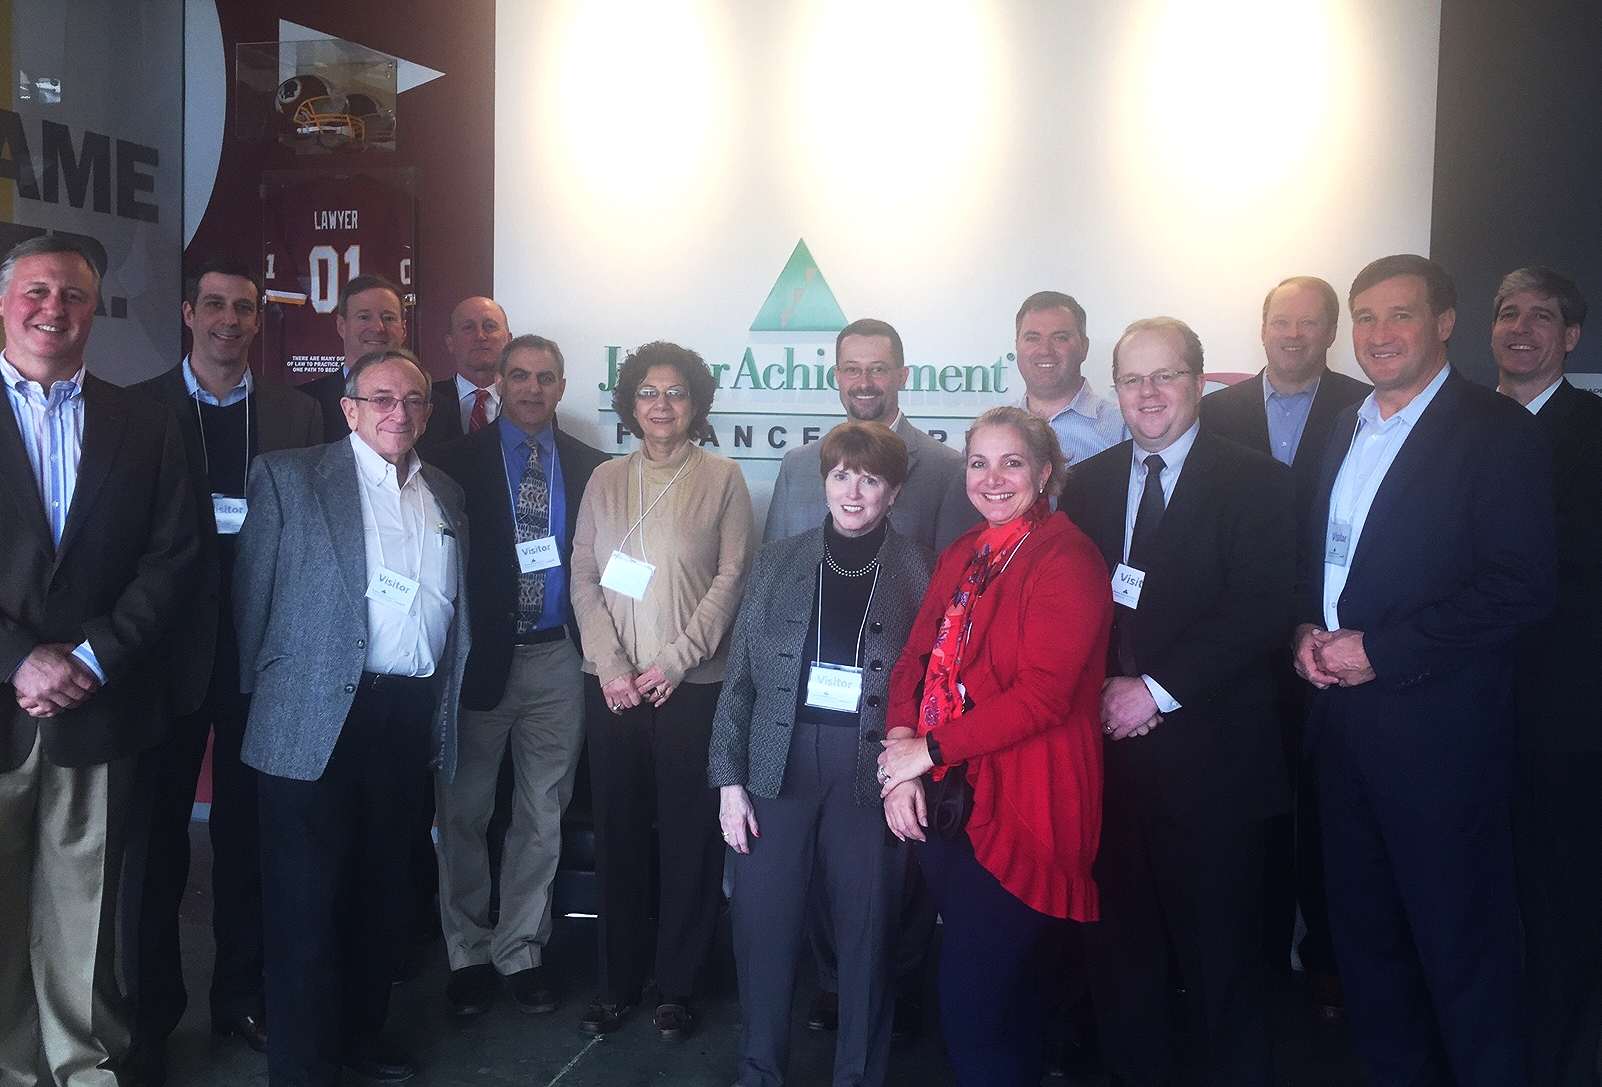 Members of the JA Finance Park® Montgomery County Advisory Council on a tour of the JA Finance Park®Prince George's County facility. Pictured (left to right) is Ed Grenier, Pete Briskman, David Samuels (back), Larry Shulman (front), Rich LaFleur (back), Steve Simon, Shahnaz Tabibi, Derek Whitwer (back), Ginanne Italiano (front), Susan Burkinshaw, Jake Ginsberg, Mark Ellenbogen, Jeff Hearle, Mike Micholas, and Will Schroeder.